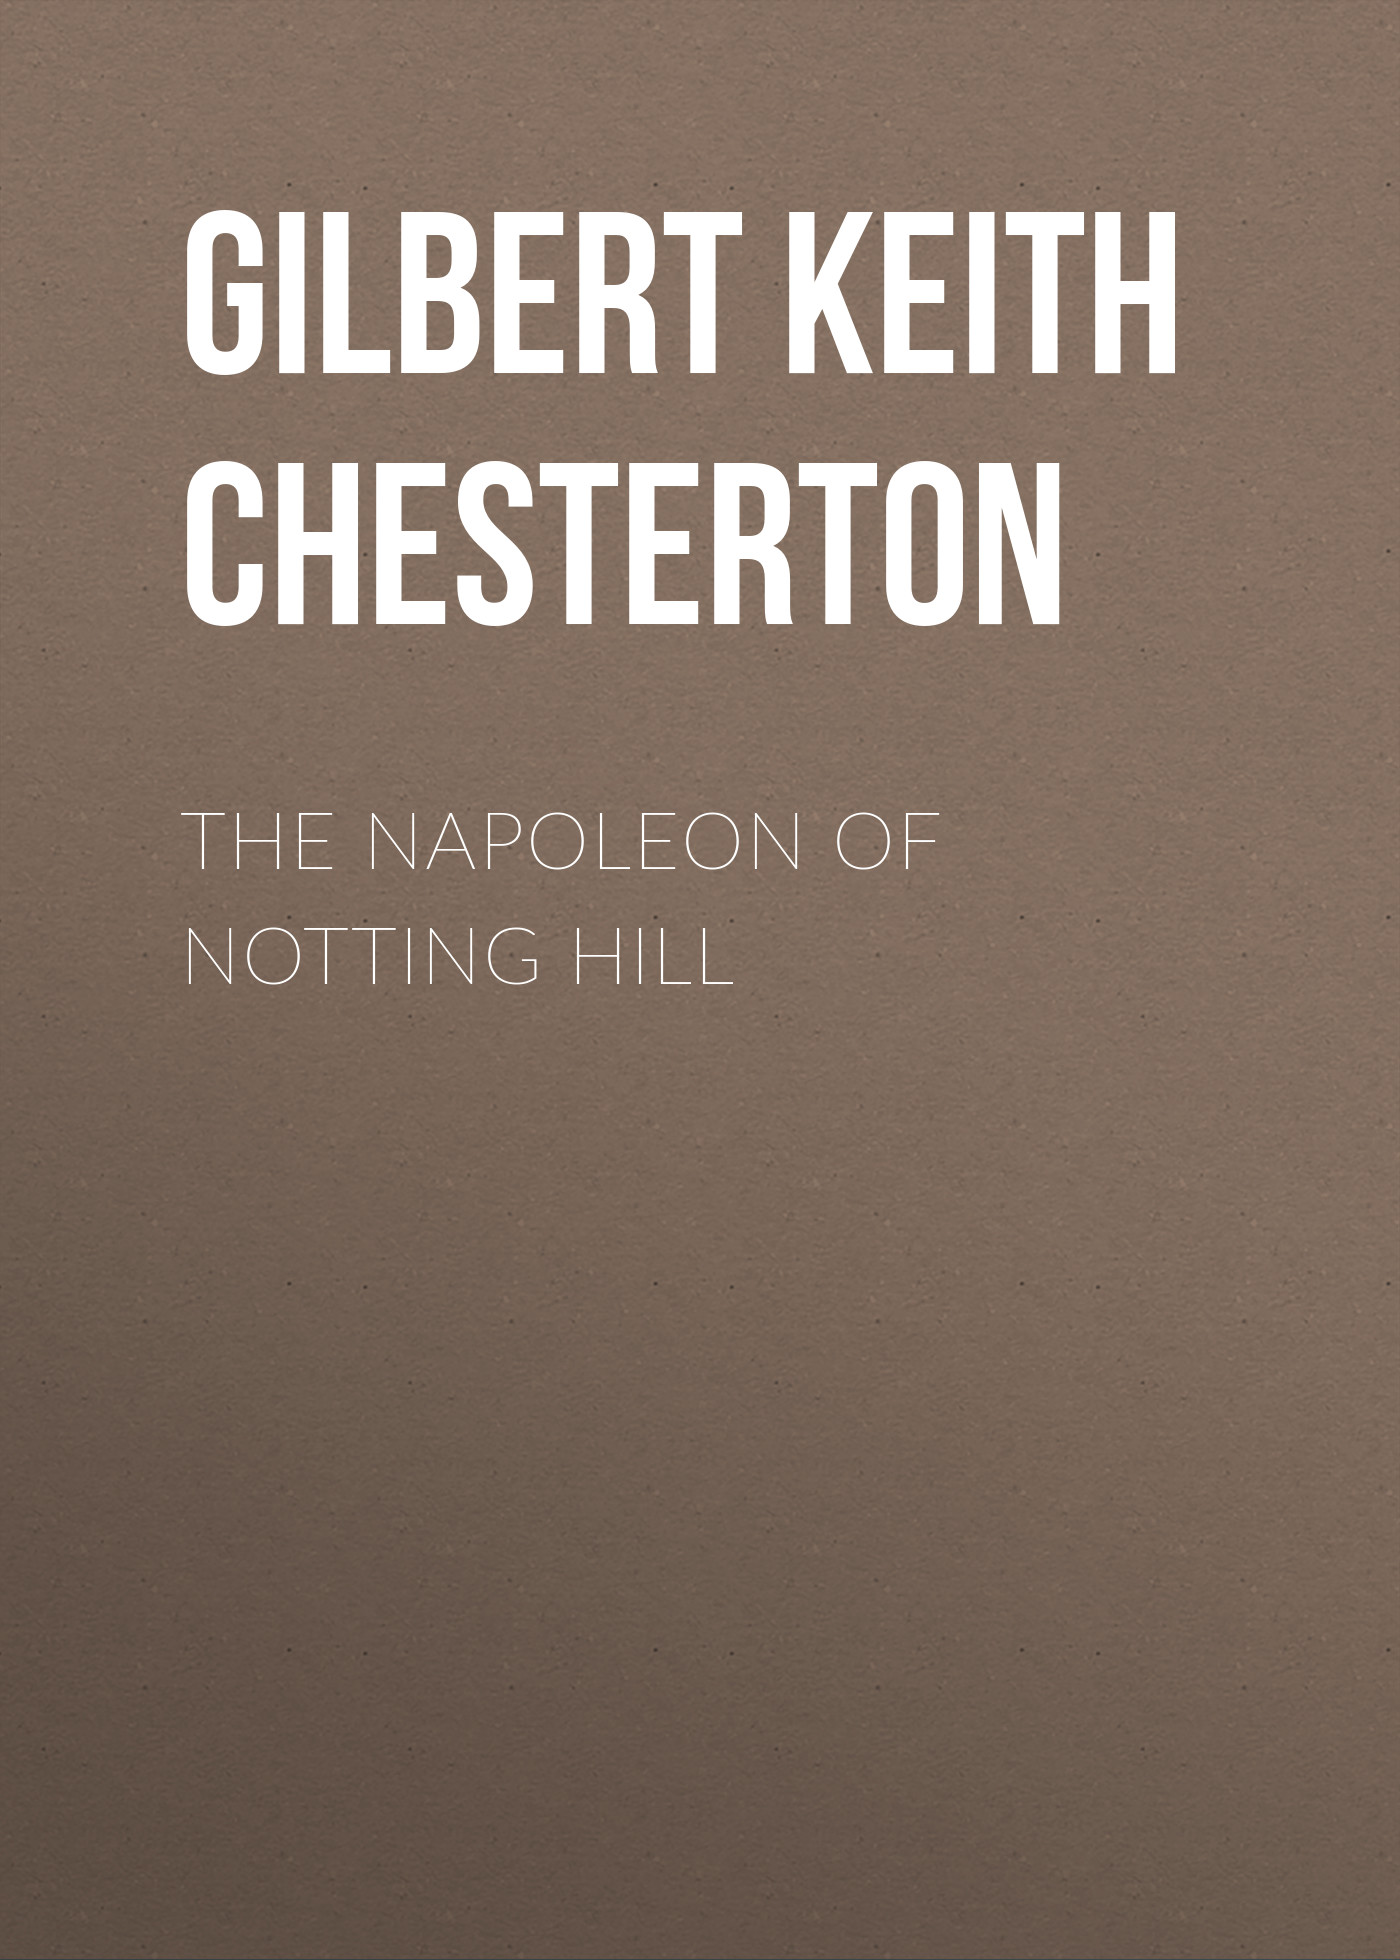 Gilbert Keith Chesterton The Napoleon of Notting Hill g k chesterton the napoleon of notting hill